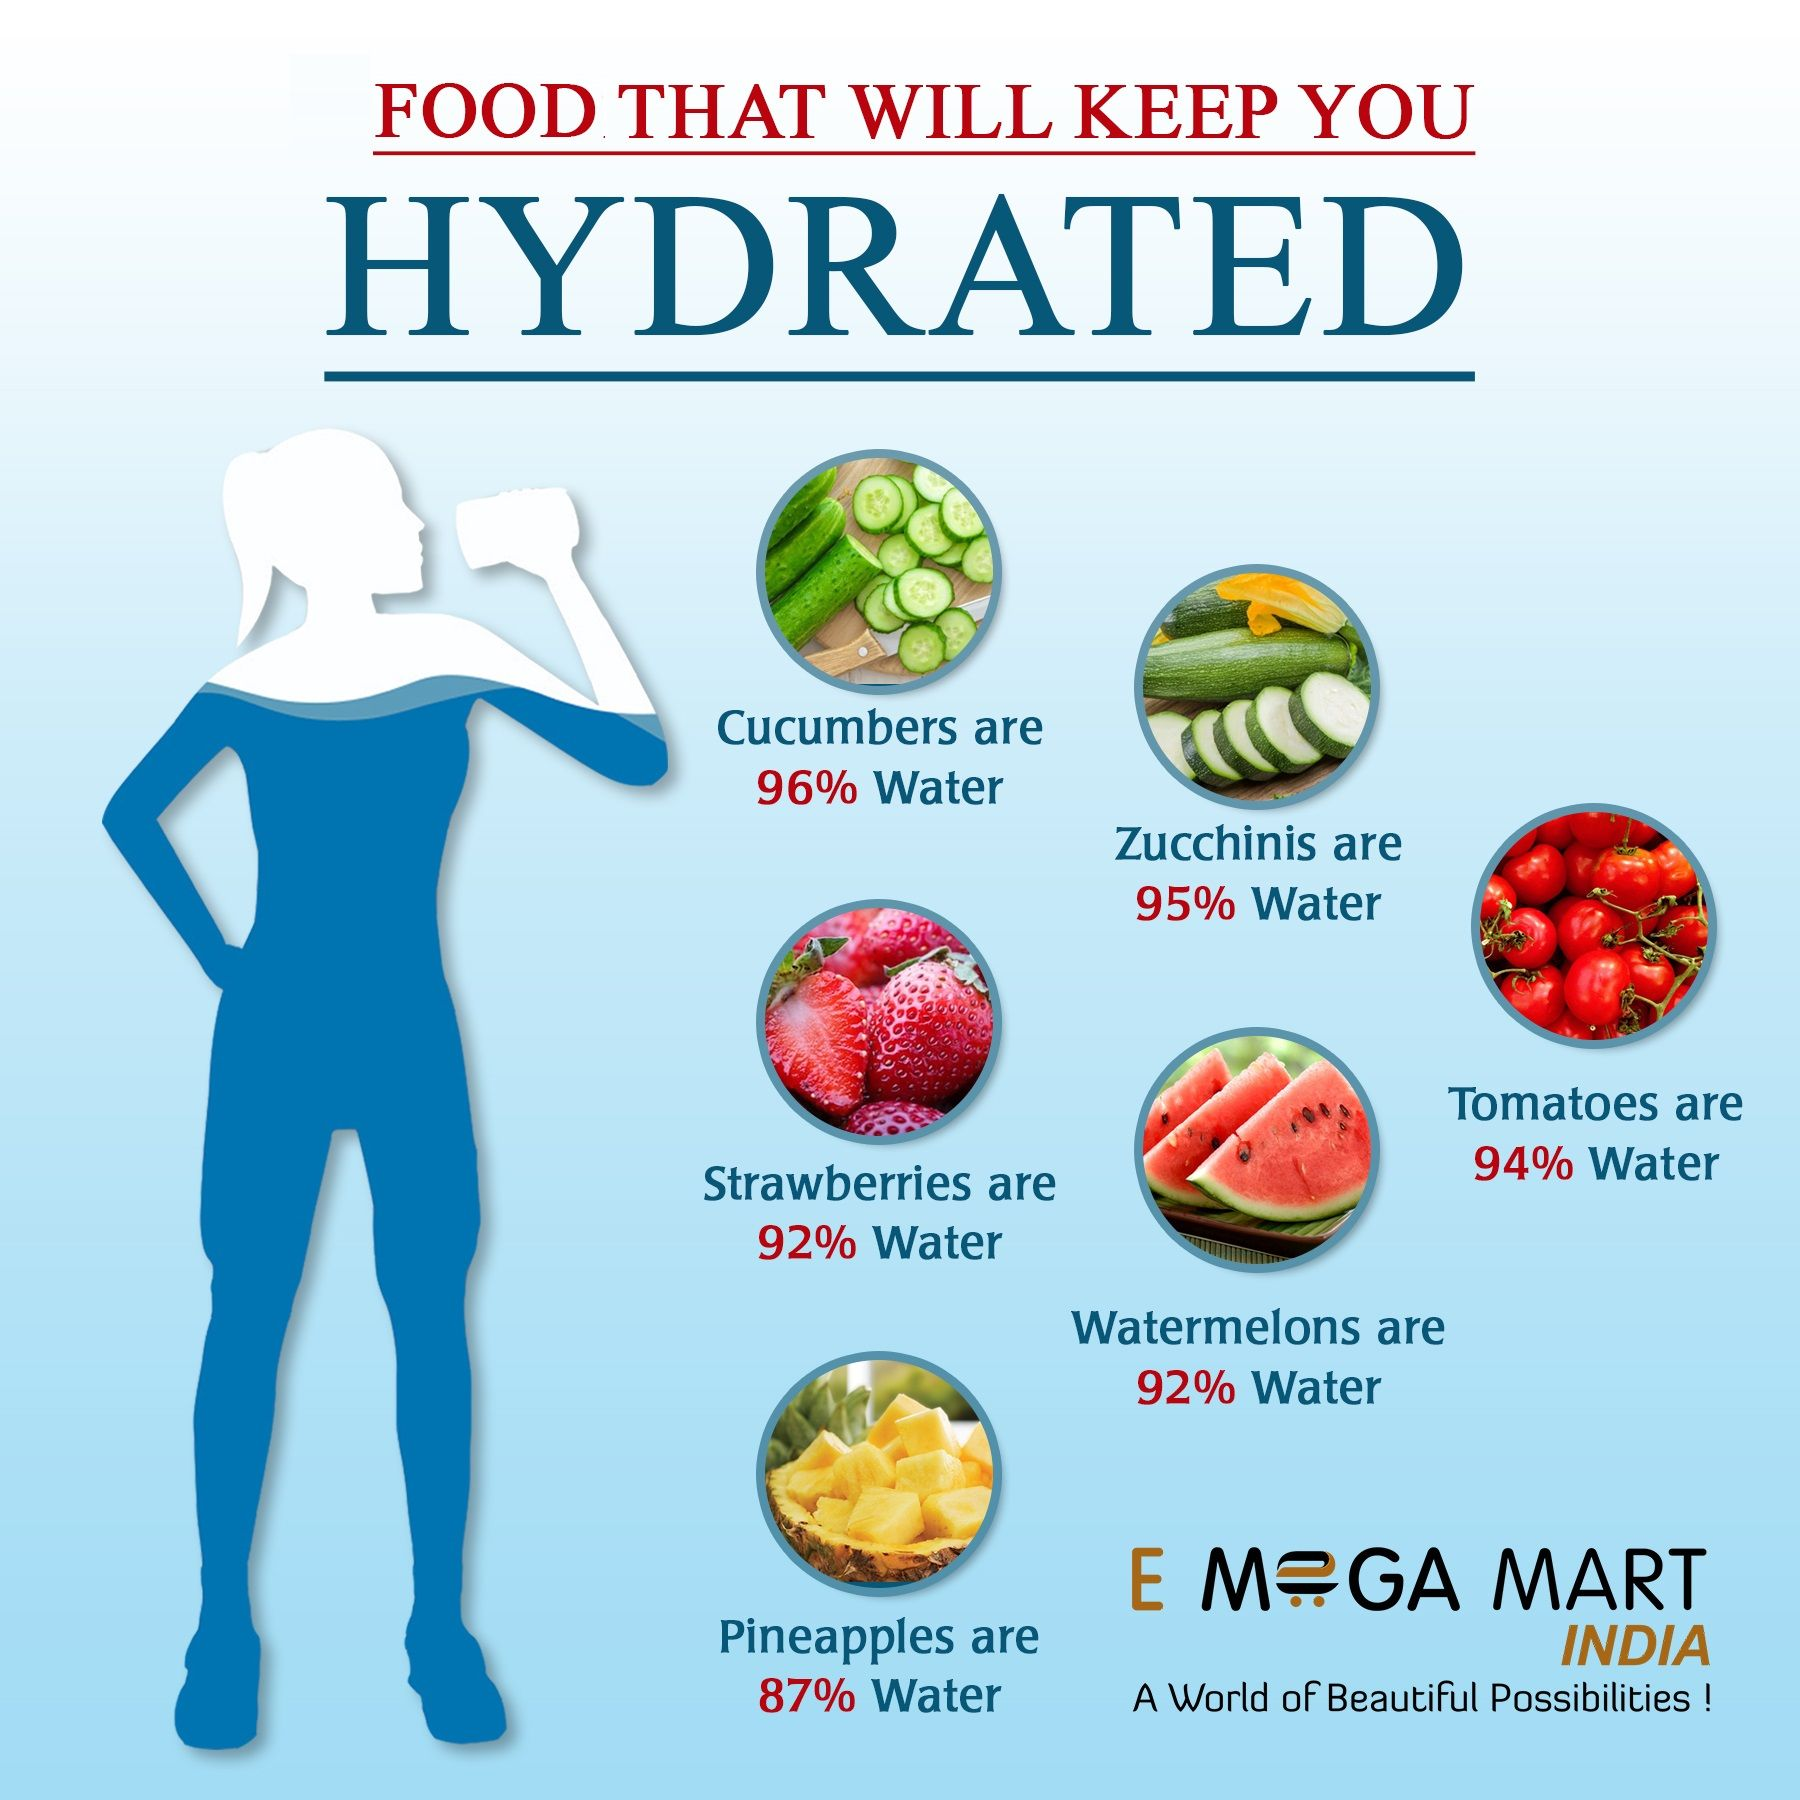 Heres list of food that will keep you hydrated for a